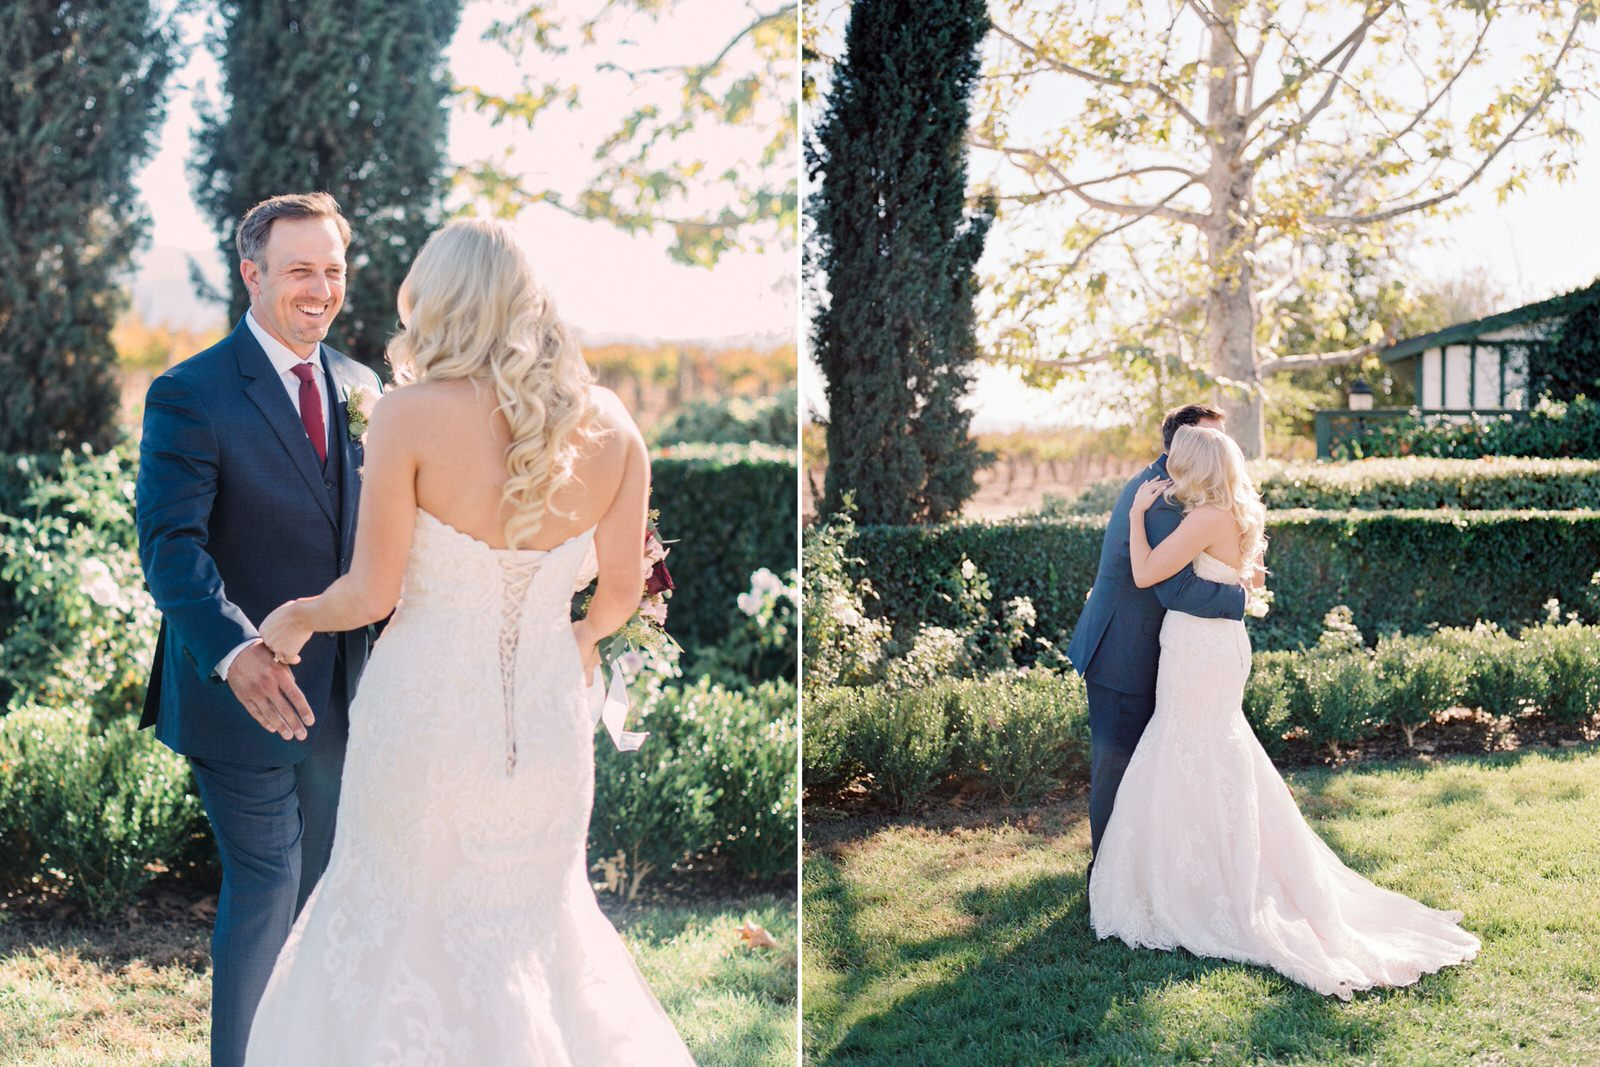 Orange county wedding, Ponte Winery Wedding, Temecula Wedding, first look, bride and groom